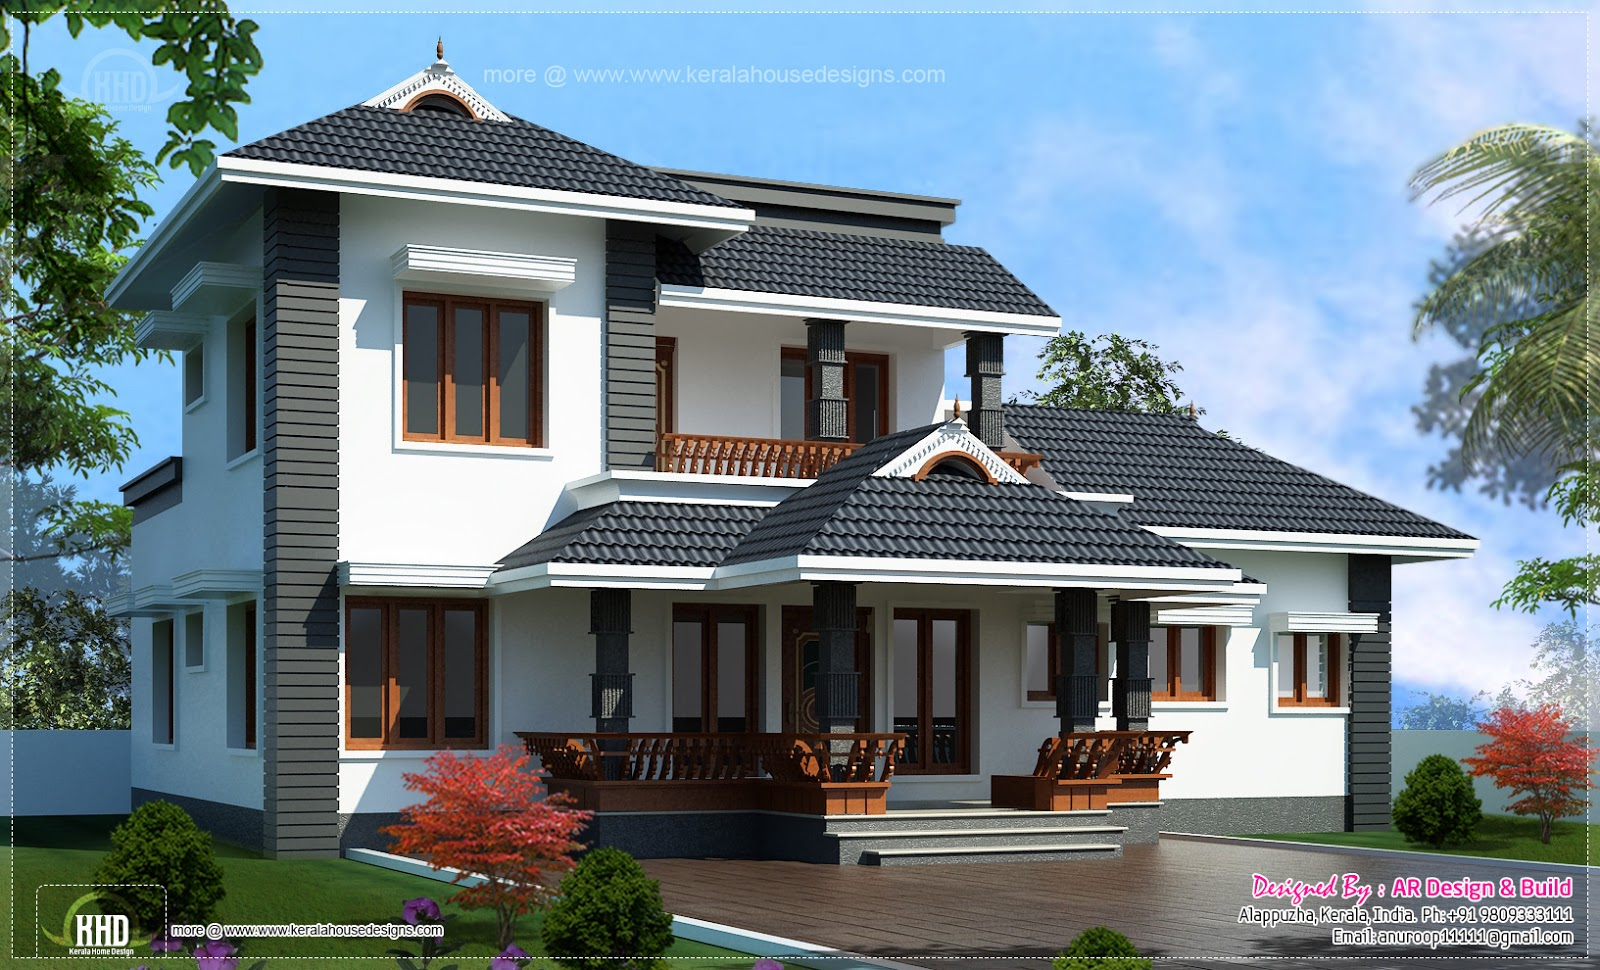 2000 4 bedroom sloping roof residence kerala for Kerala house models photos